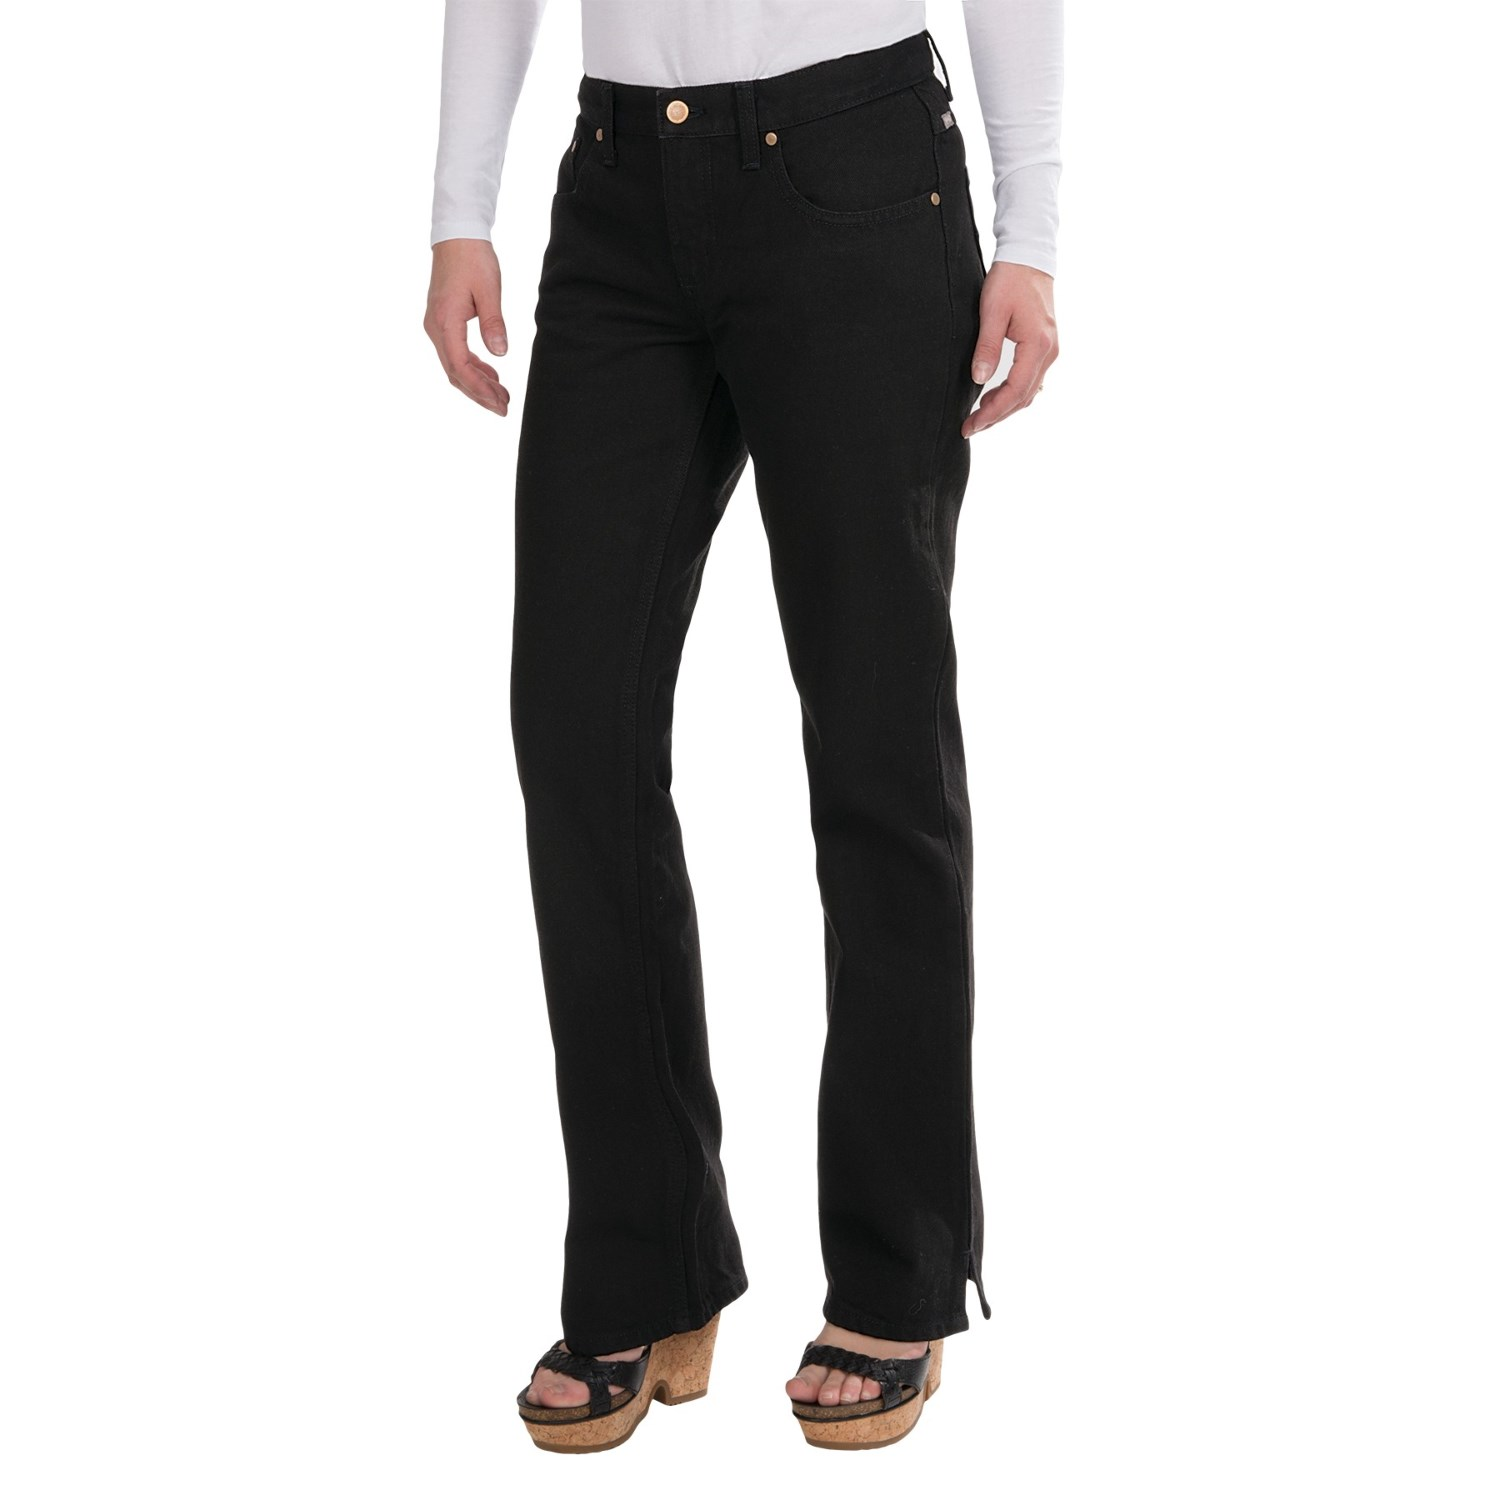 Like all of our denim collections, Langston's carries low rise jeans for women from brand name favorites like Cruel Girl, Levi's, Miss Me, Rock & Roll Cowgirl, Stetson, Wrangler and Petrol, which means you're getting stylish jeans at a reasonable price that are also comfortable and long-lasting.